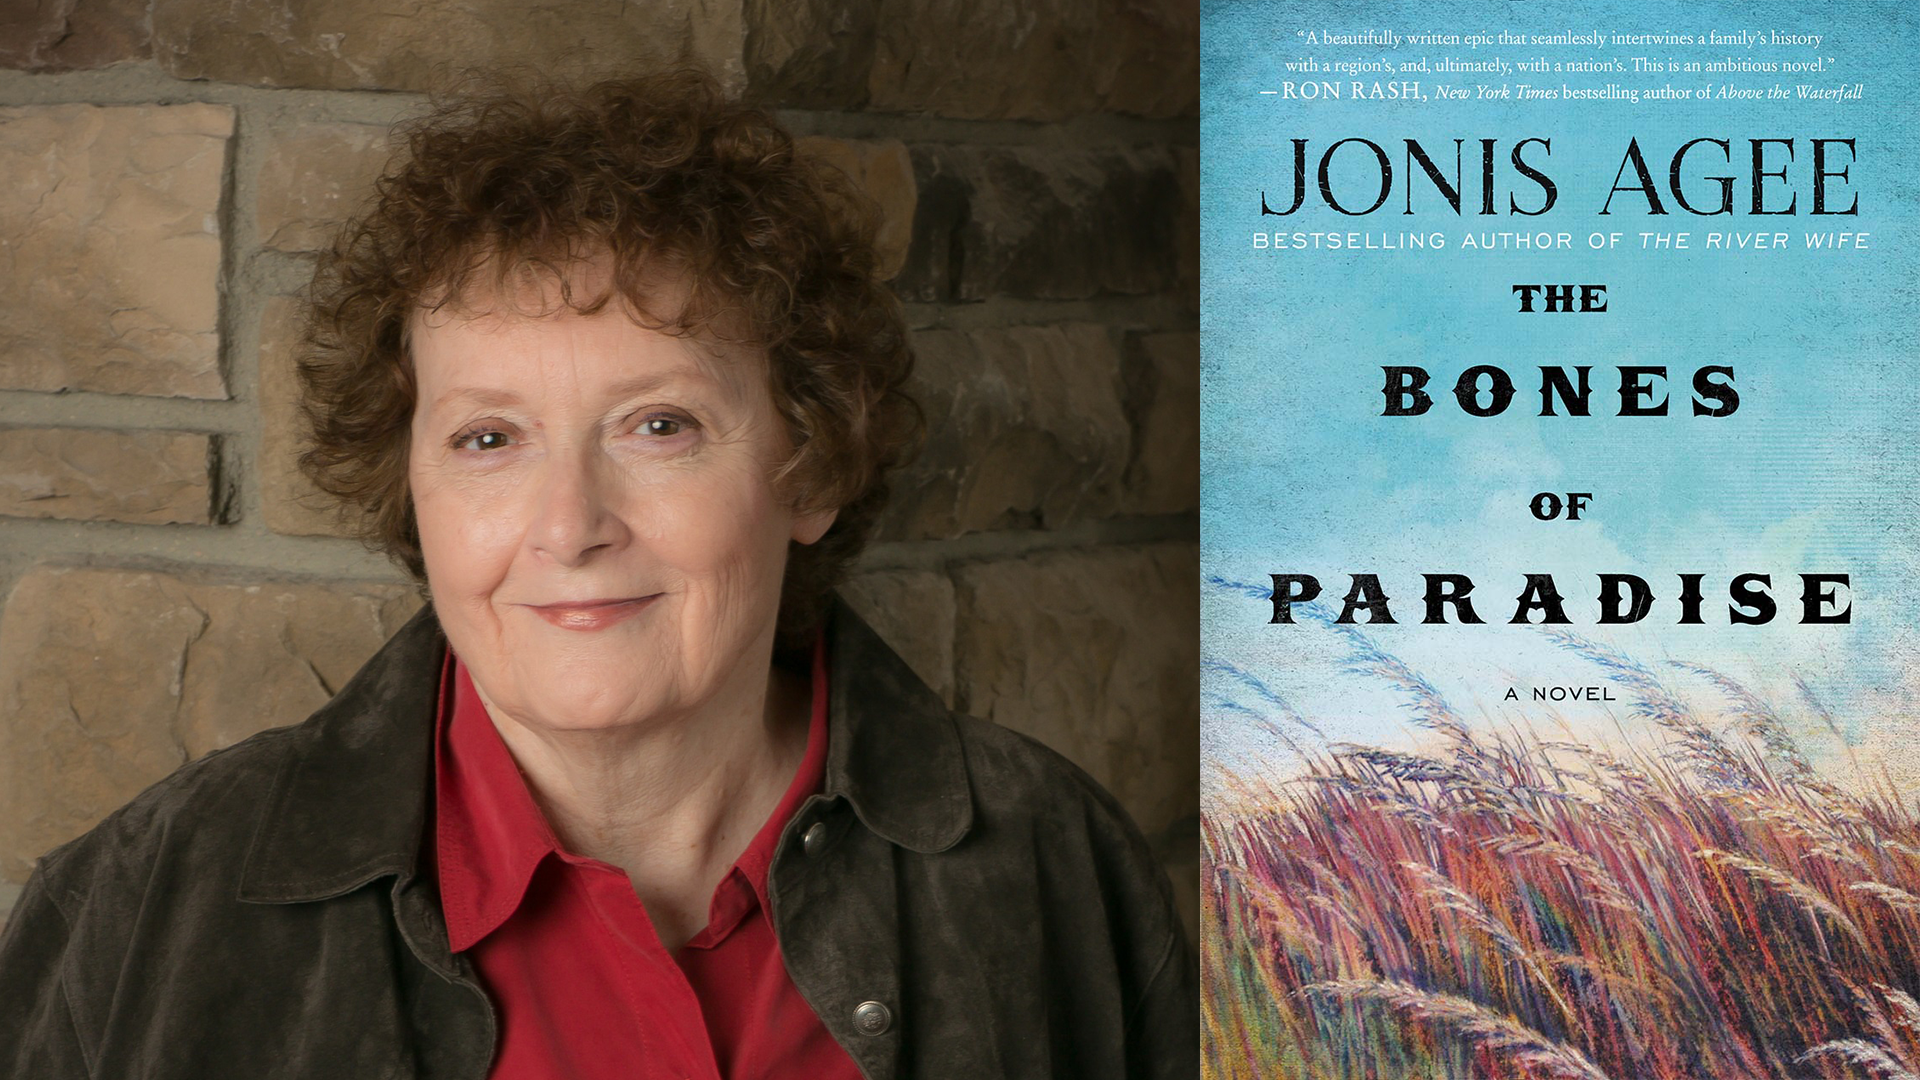 Jonis Agee and the cover of THE BONES OF PARADISE; links to news story Agee selected as finalist for 2017 High Plains Book Awards